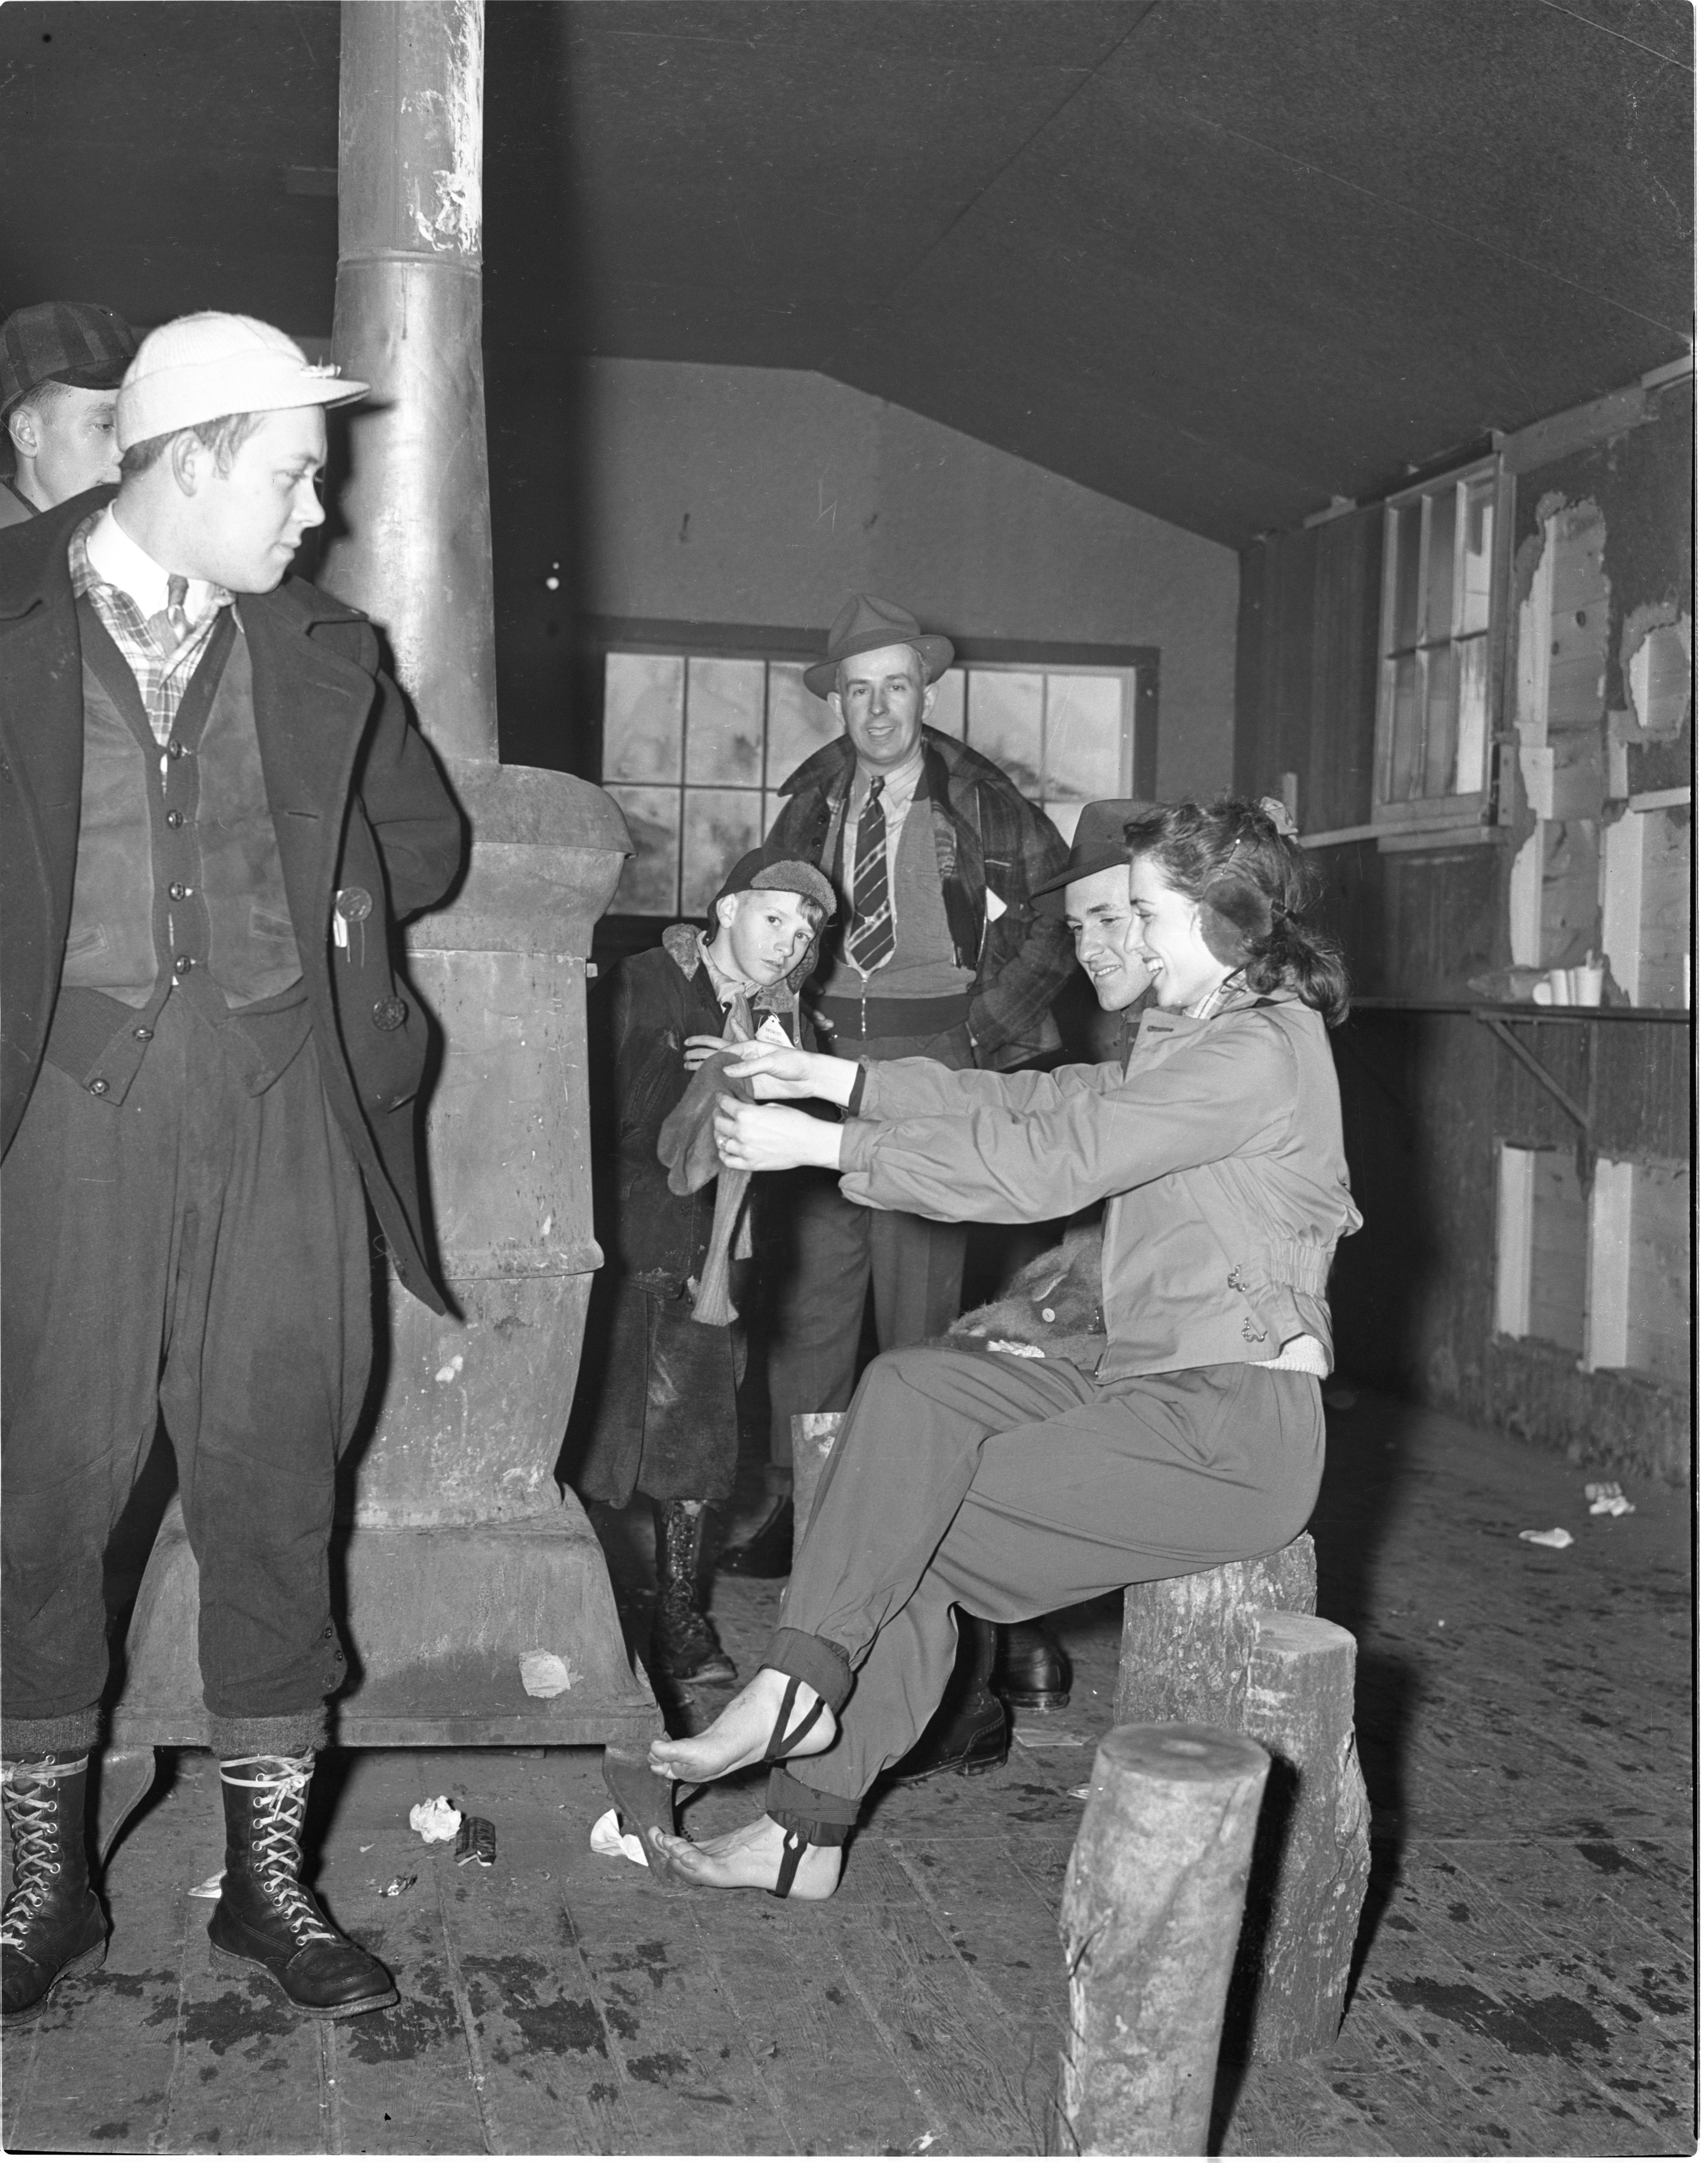 Drying Socks Inside Warming House At Grayling Winter Sports Park, January 1940 image